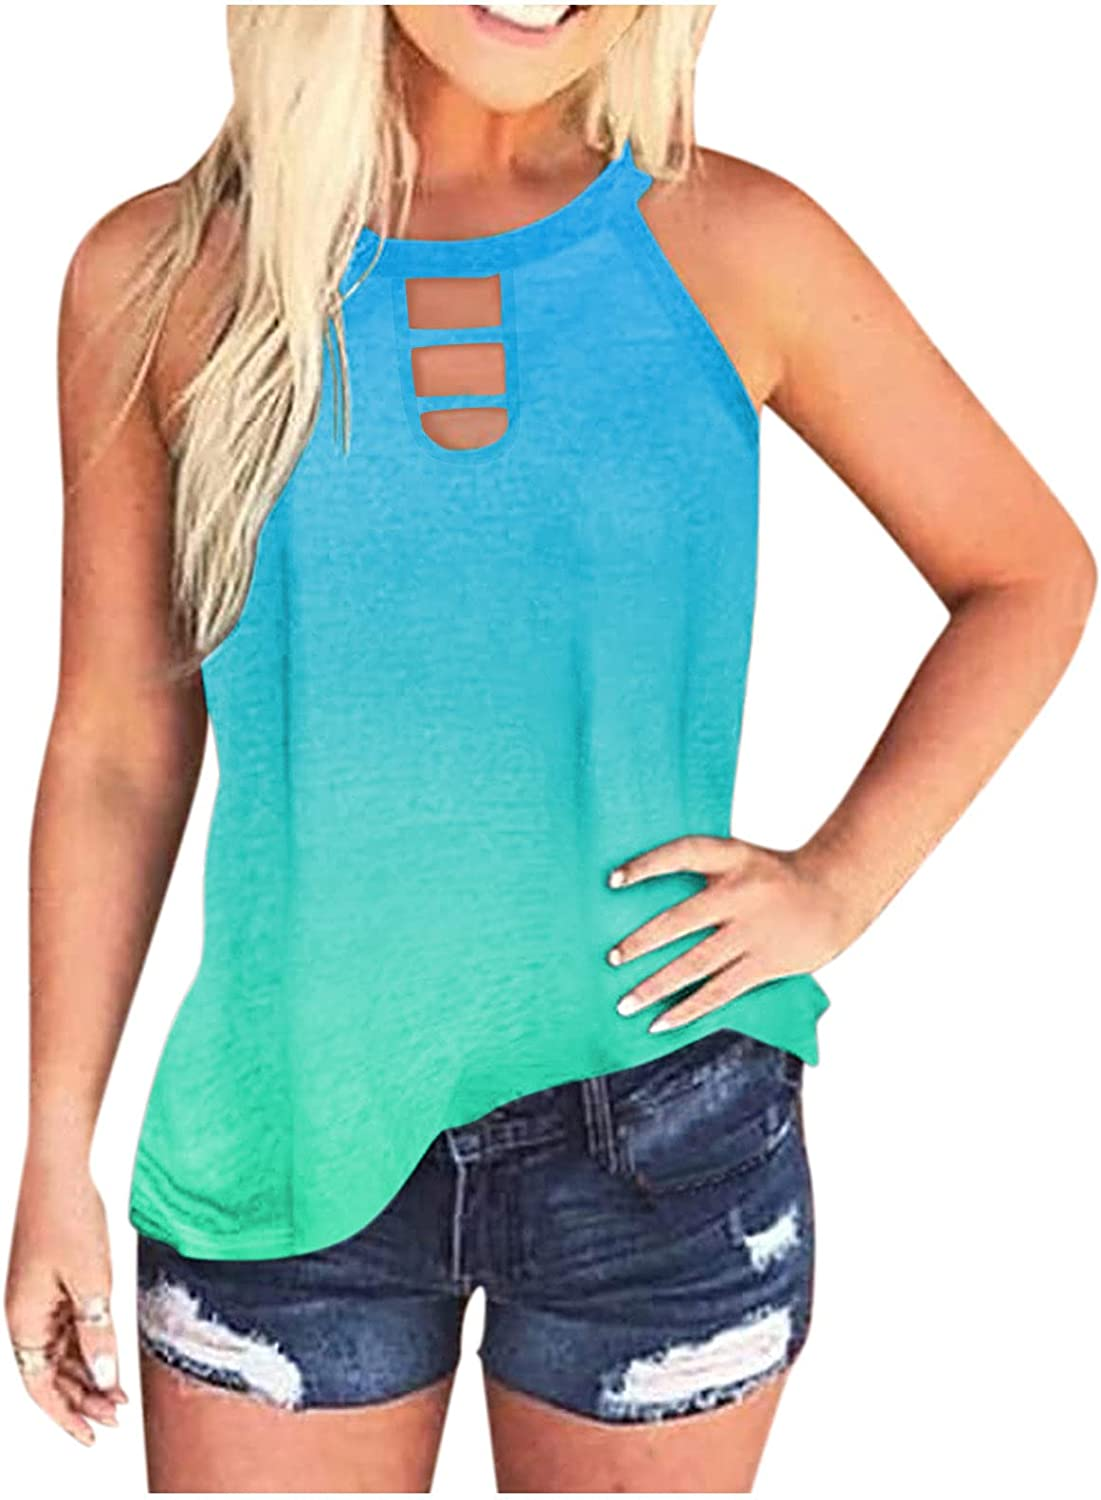 Womens Tops, Women'S Summer Tops Tie Dye Tank Tops Sleeveless Vest Loose Fit Blouse Casual Summer Gradient Shirts